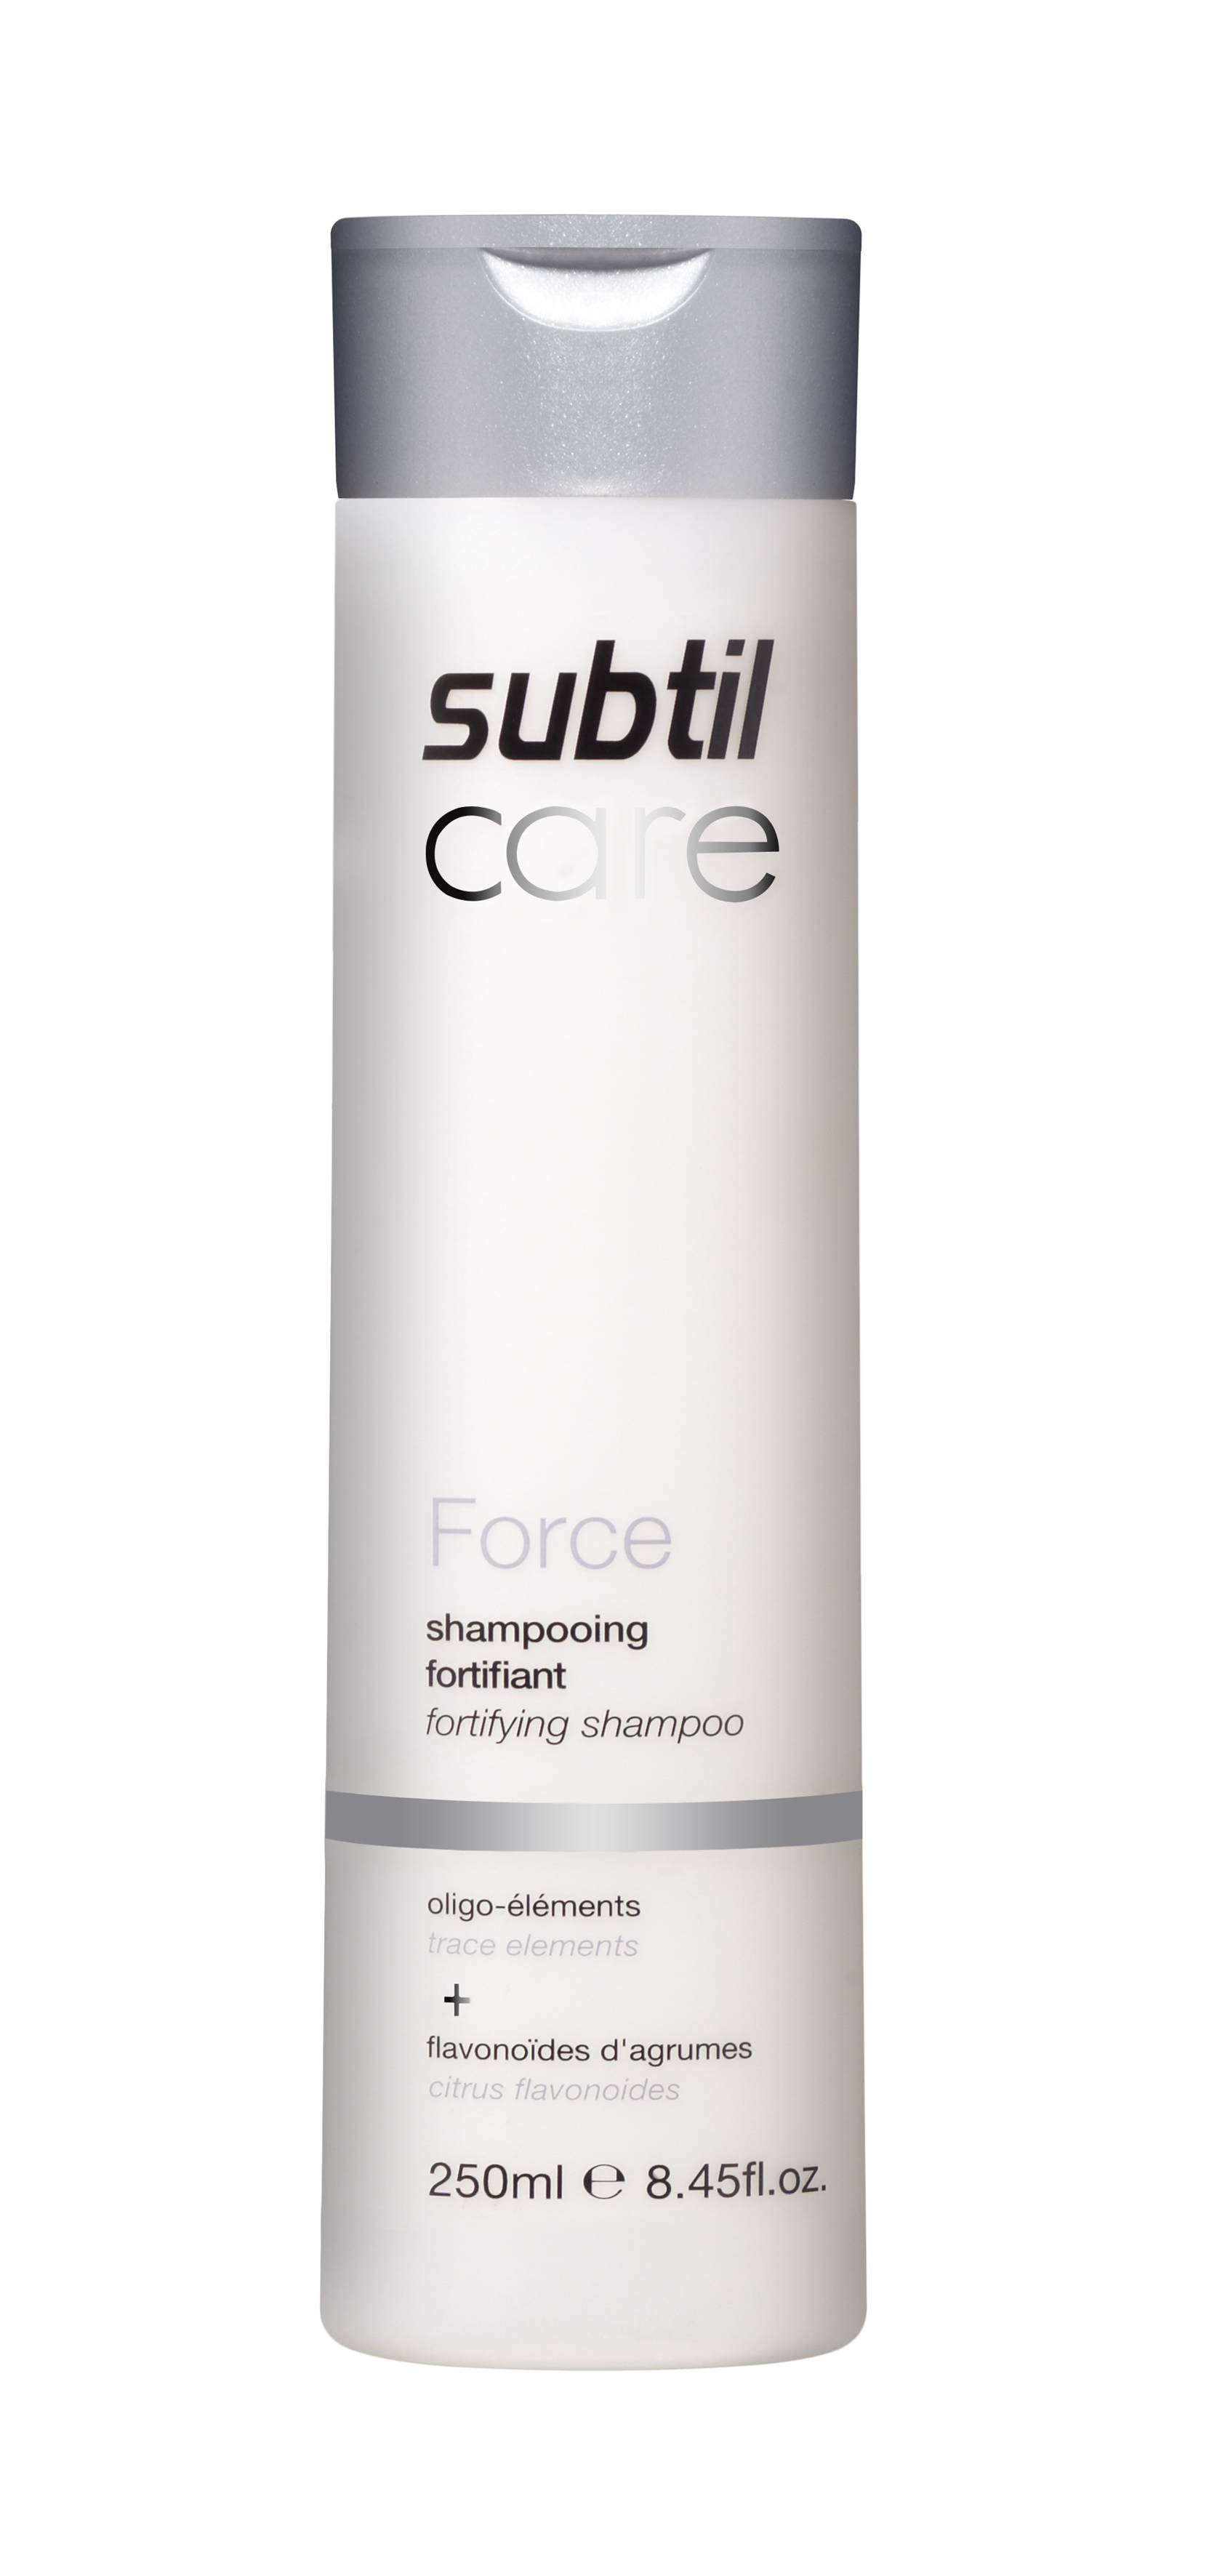 Subtil Care Force shampooing fortifiant 250 ml